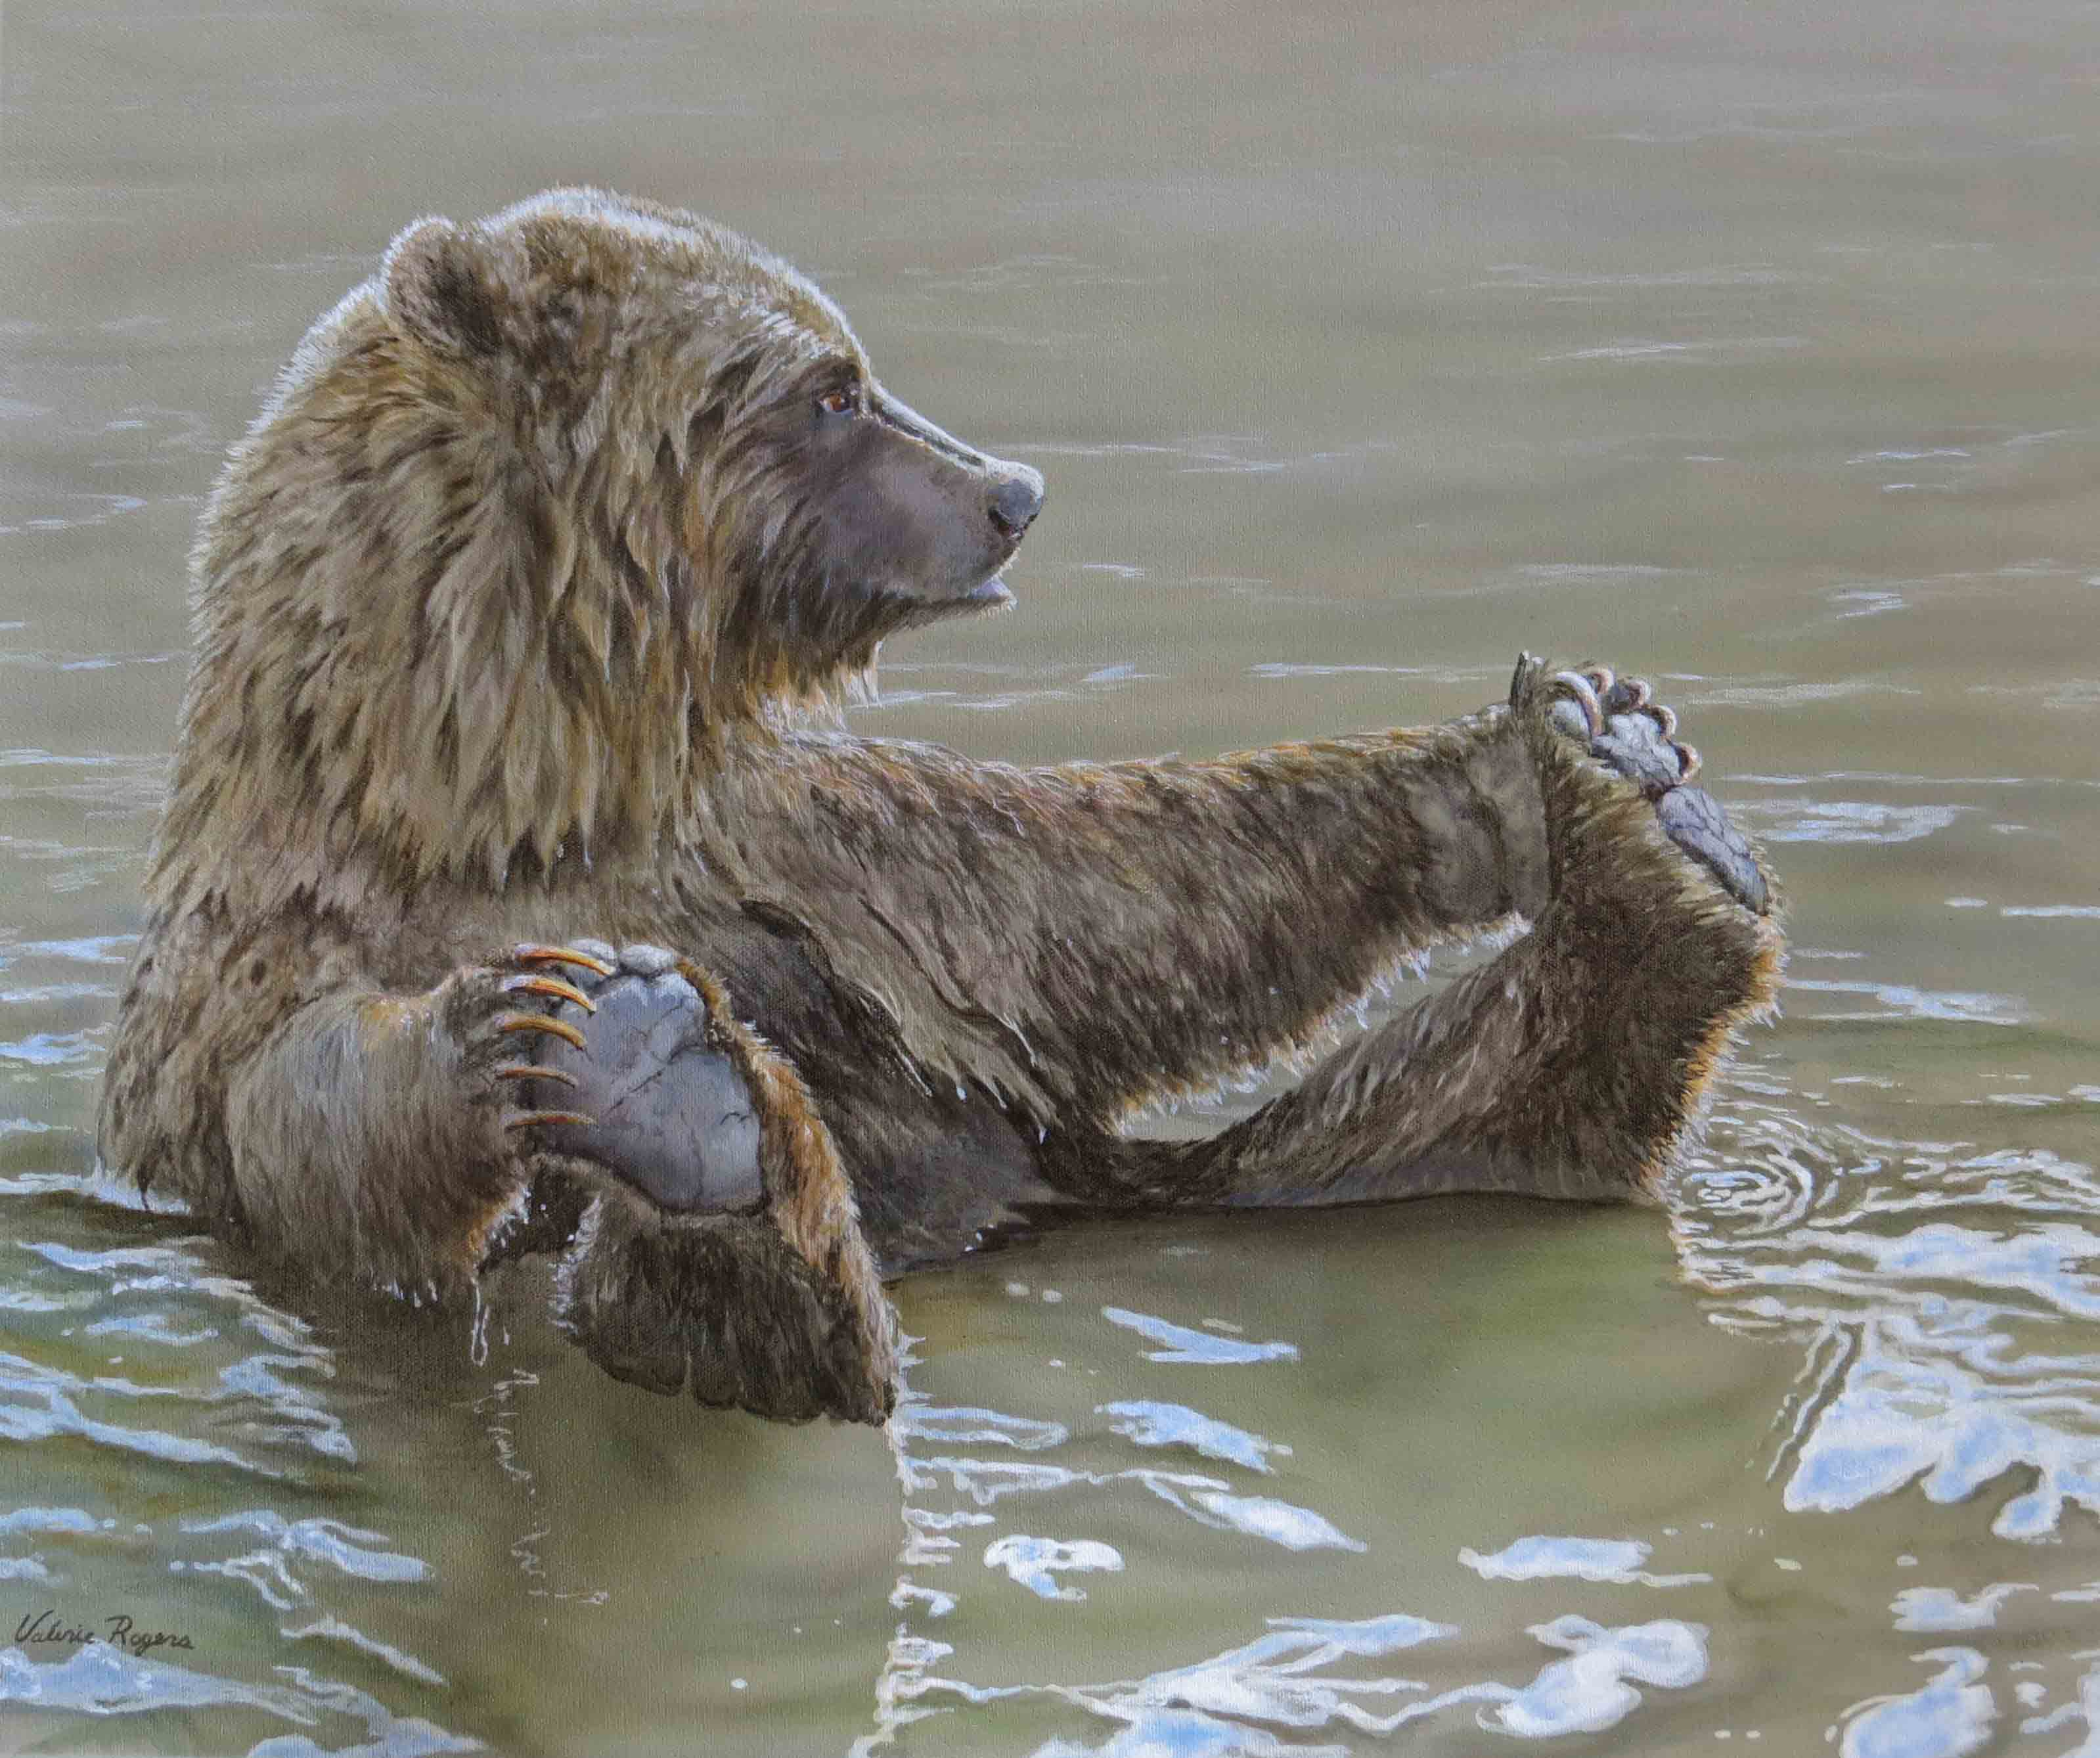 Painting of Bear in water